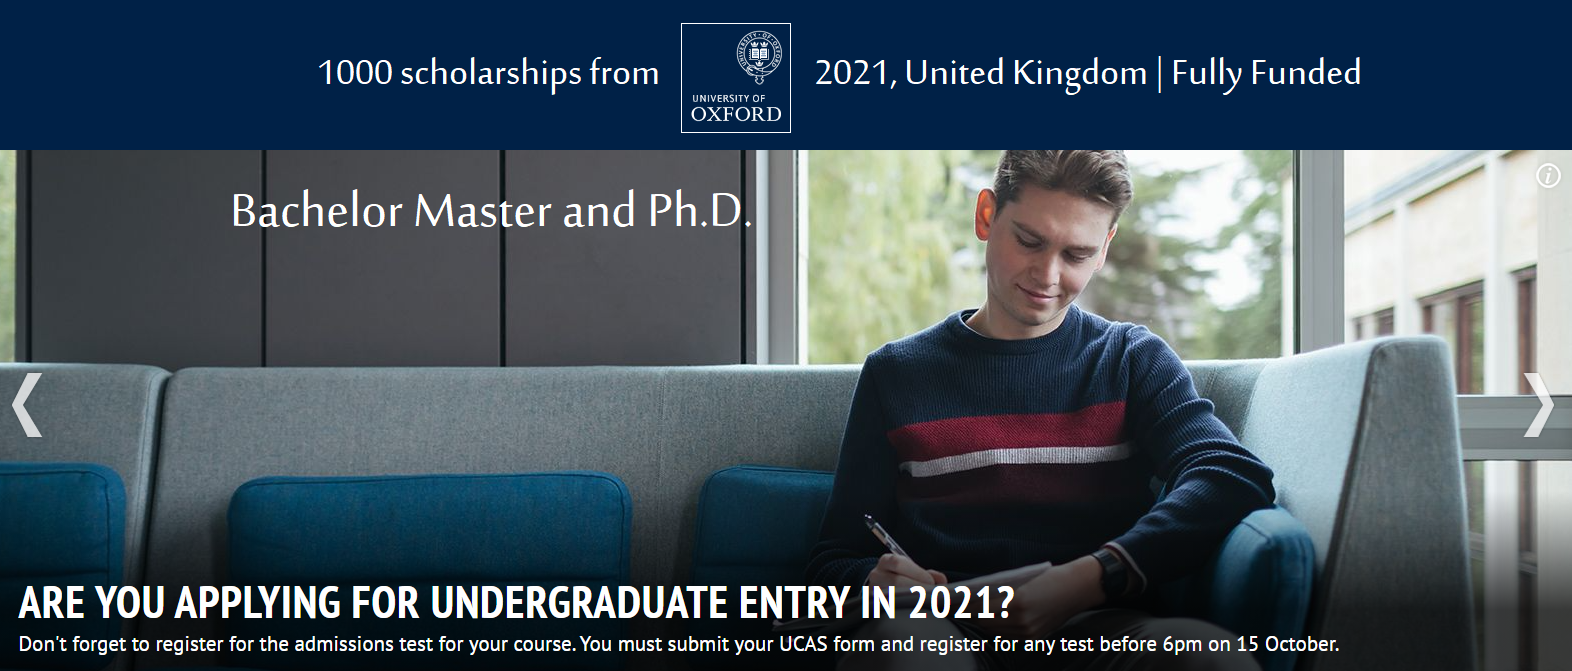 Rich Oxford Scholarships Bachelor Master and Ph.D. 2021 ...